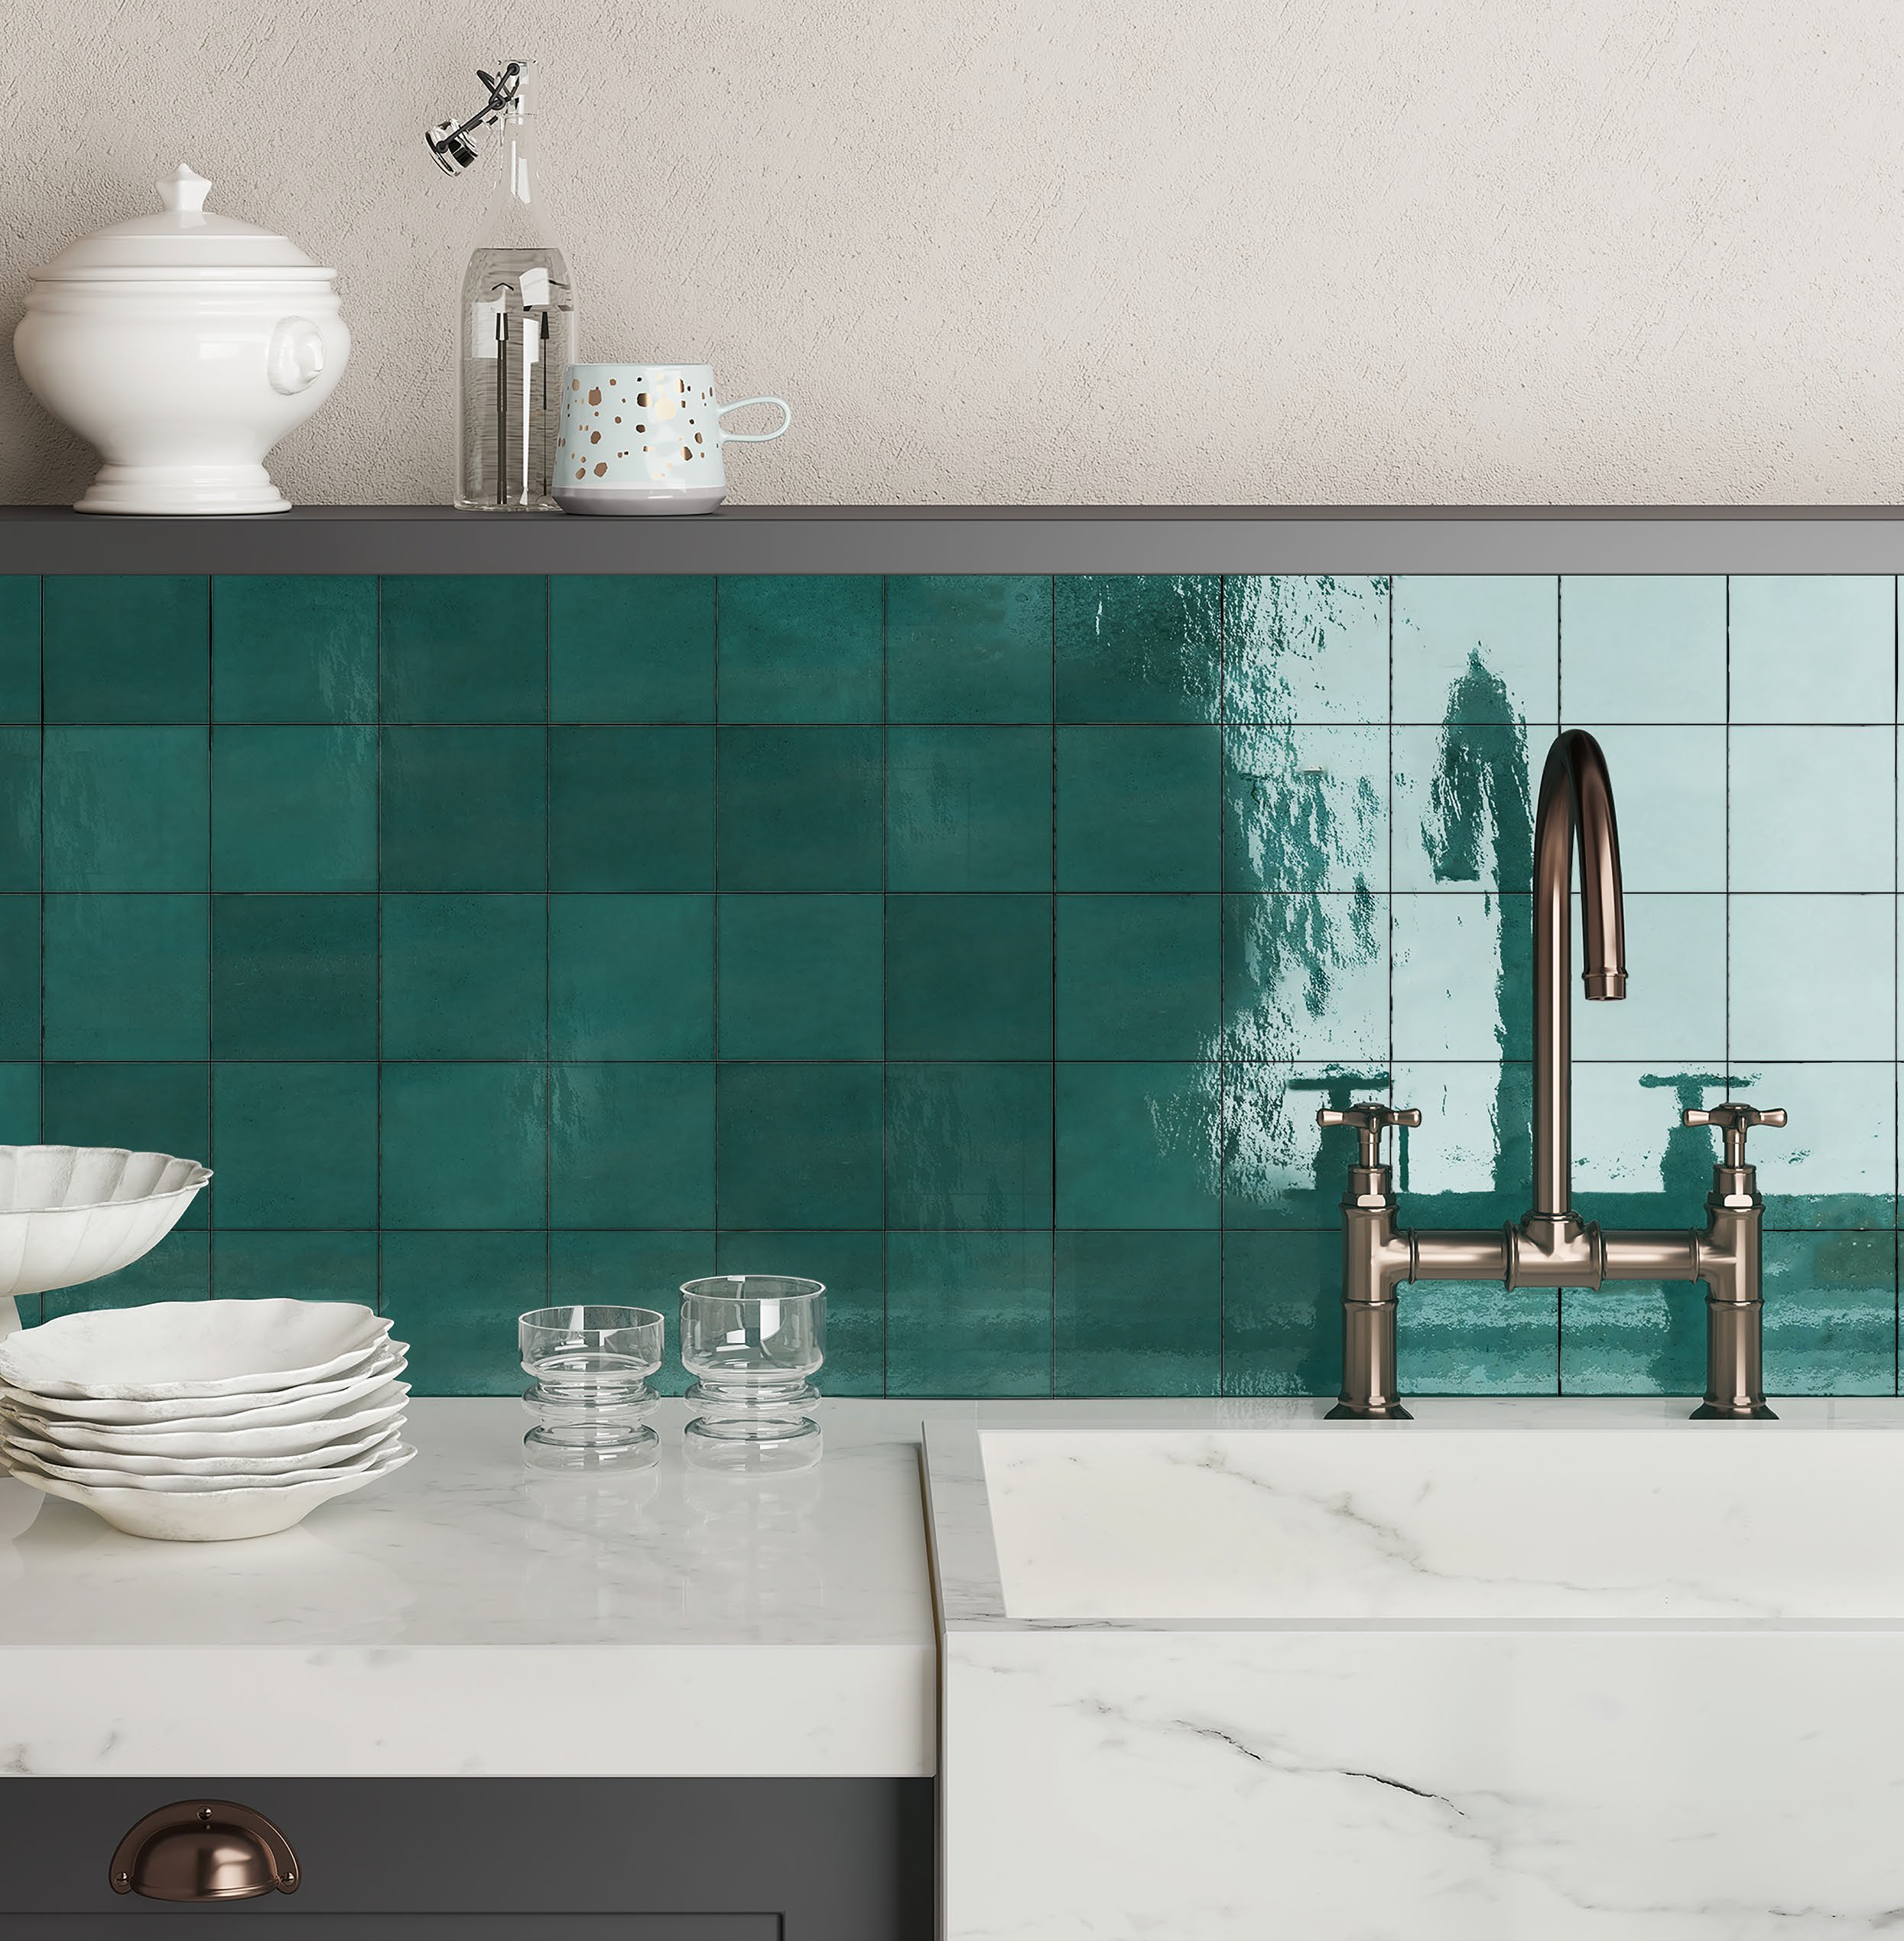 Casablanca Turquoise In 2021 Kitchen Wall Tiles Rustic Farmhouse Kitchen Moroccan Tiles Kitchen